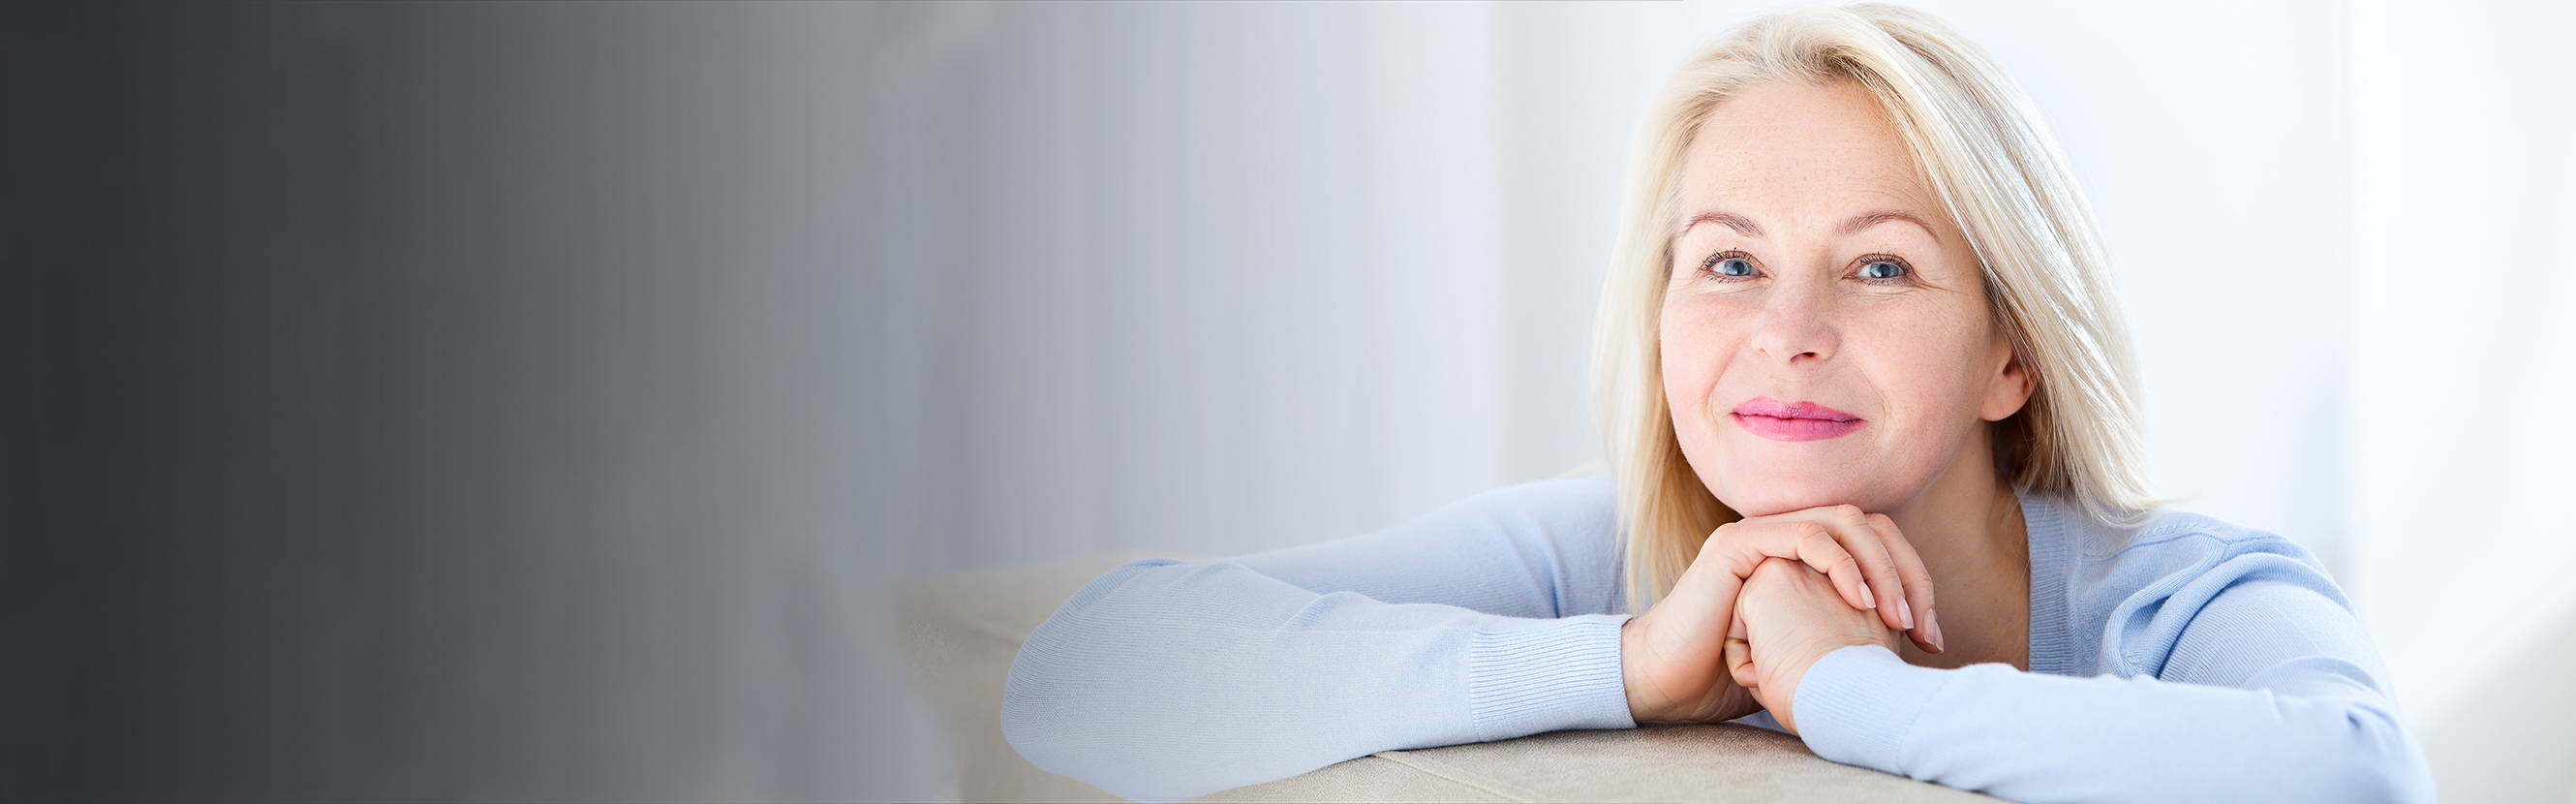 Woman With Blonde Hair Smiling